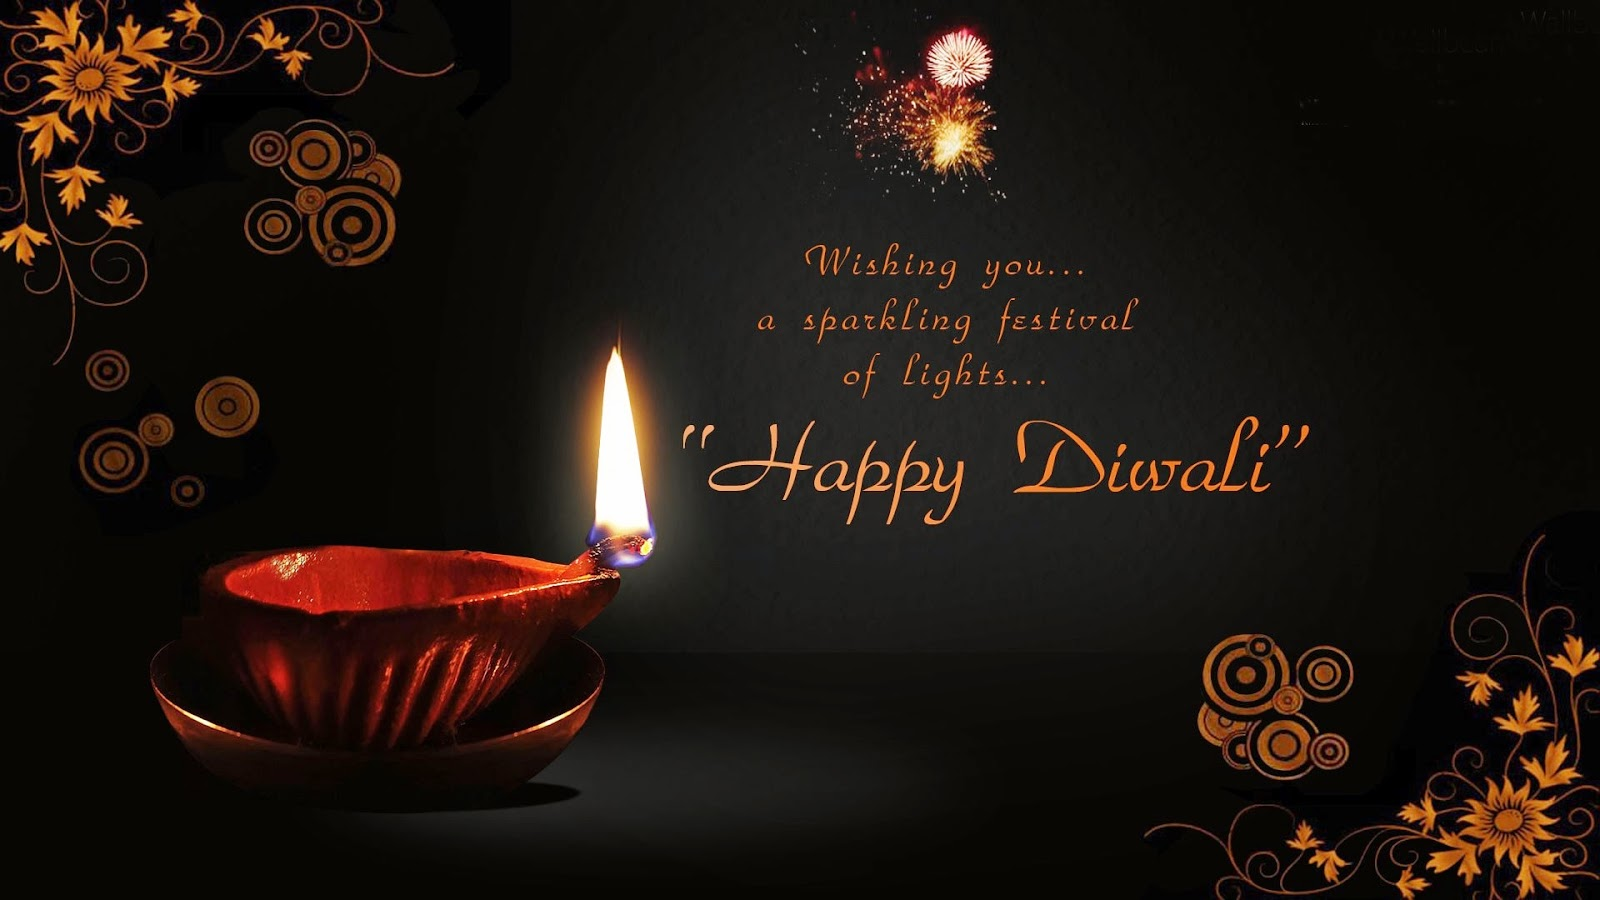 Diwali Wishes Quotes Wallpapers Download Happy Diwali Images Greetings Wishes Rangoli Hd Wallpapers